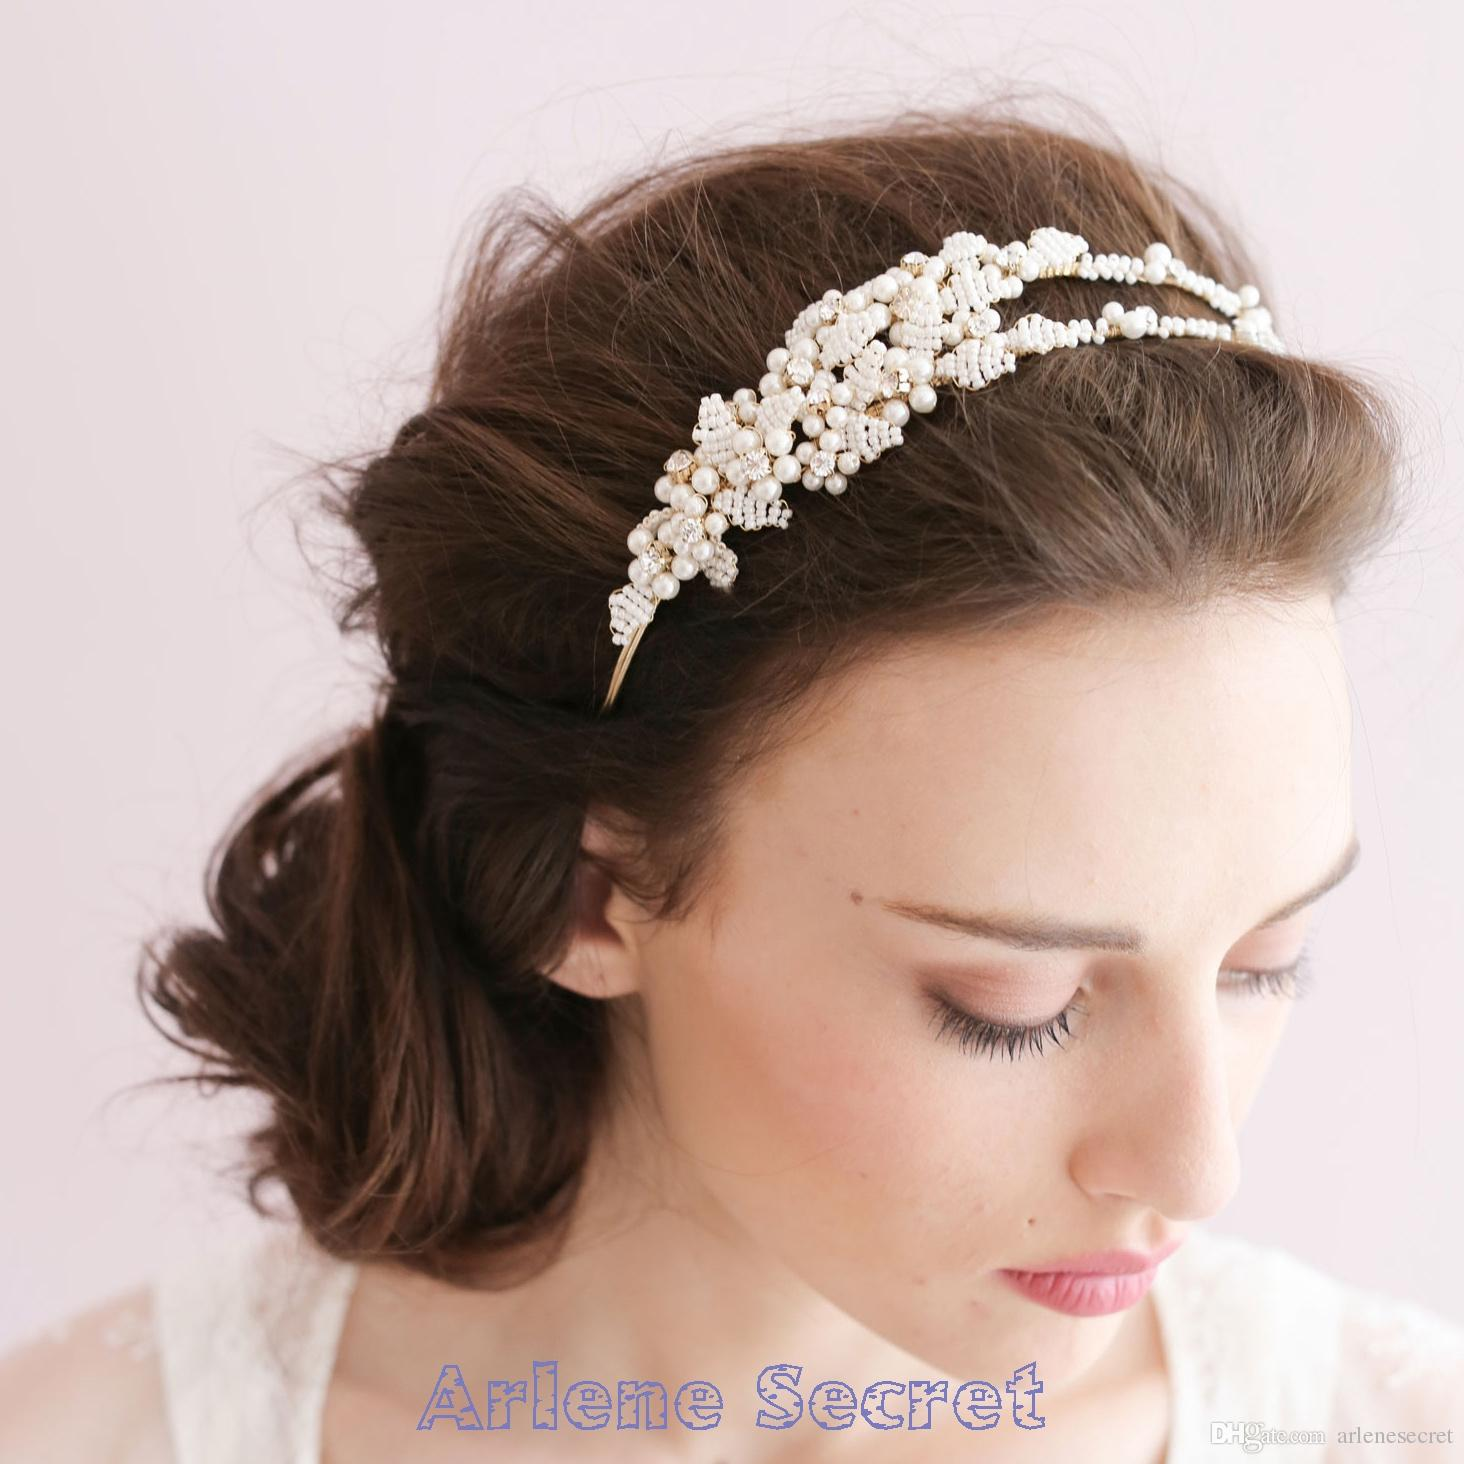 Hair accessories for wedding online india - Wedding Hair Accessories Online Malaysia 2015 Bridal Tiaras For Wedding Hair Accessories Crystal Rhinestone Tiny